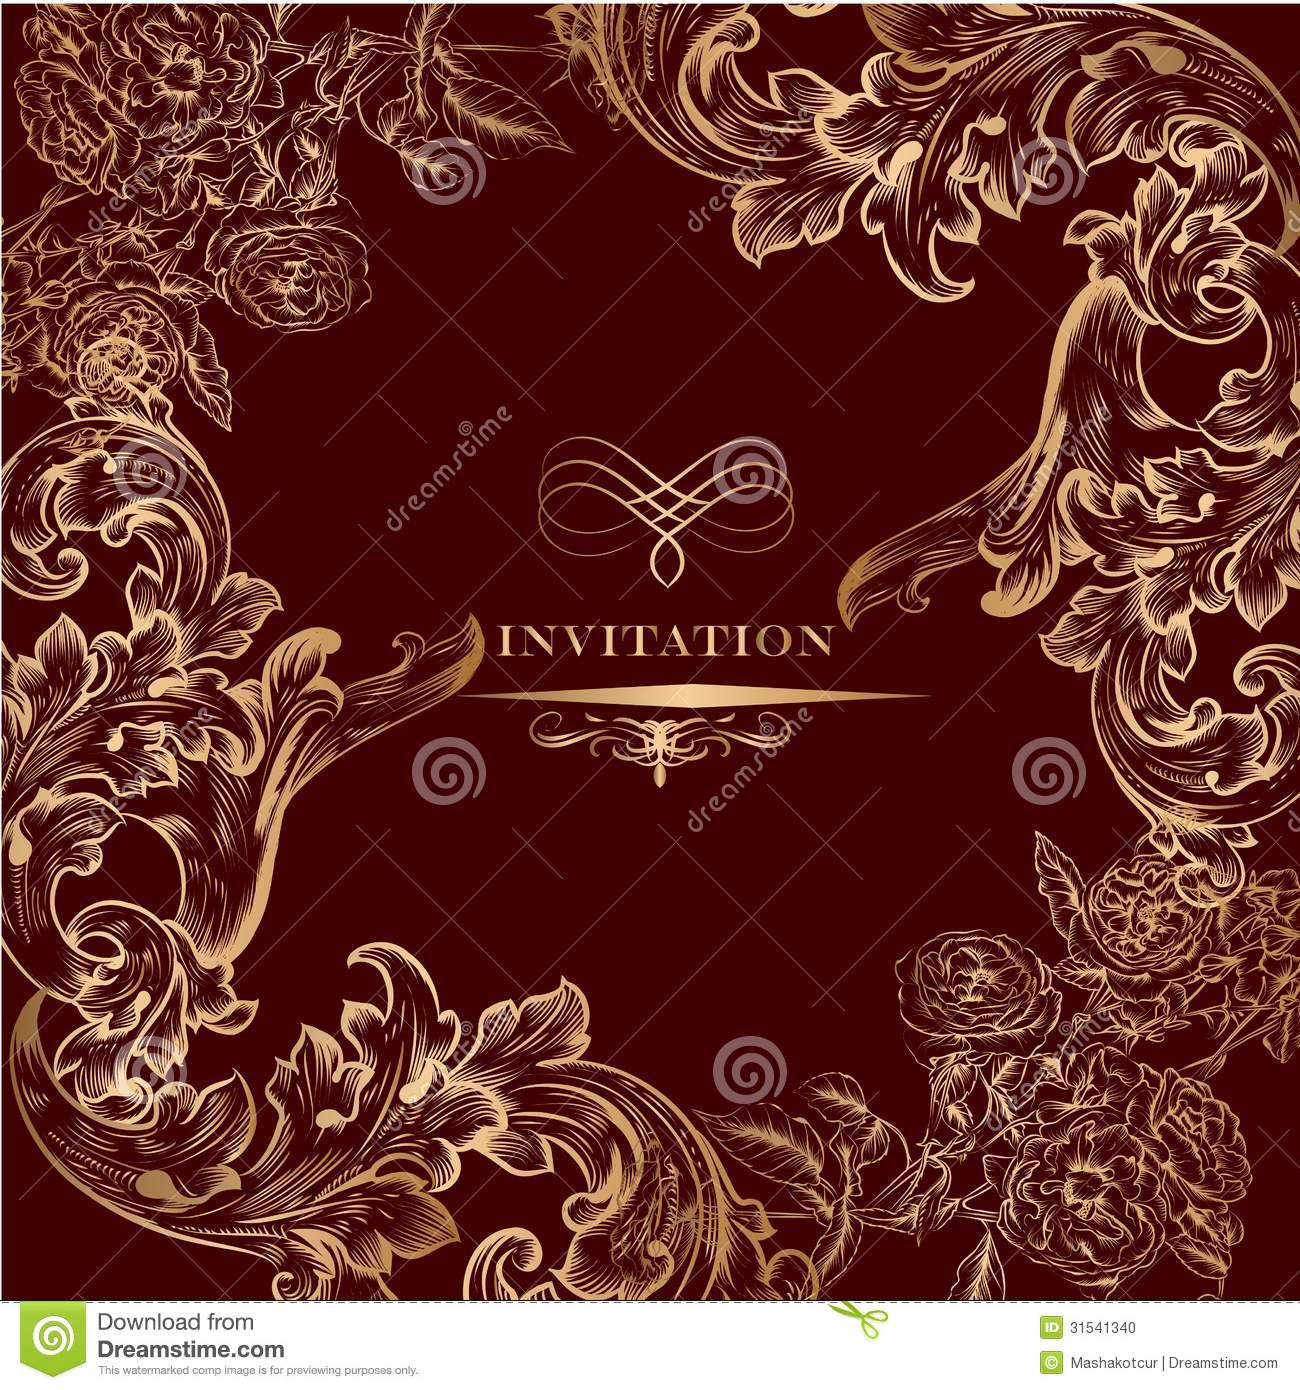 Royal invitation card with golden vintage ornament stock vector royal invitation card with golden vintage ornament stopboris Image collections